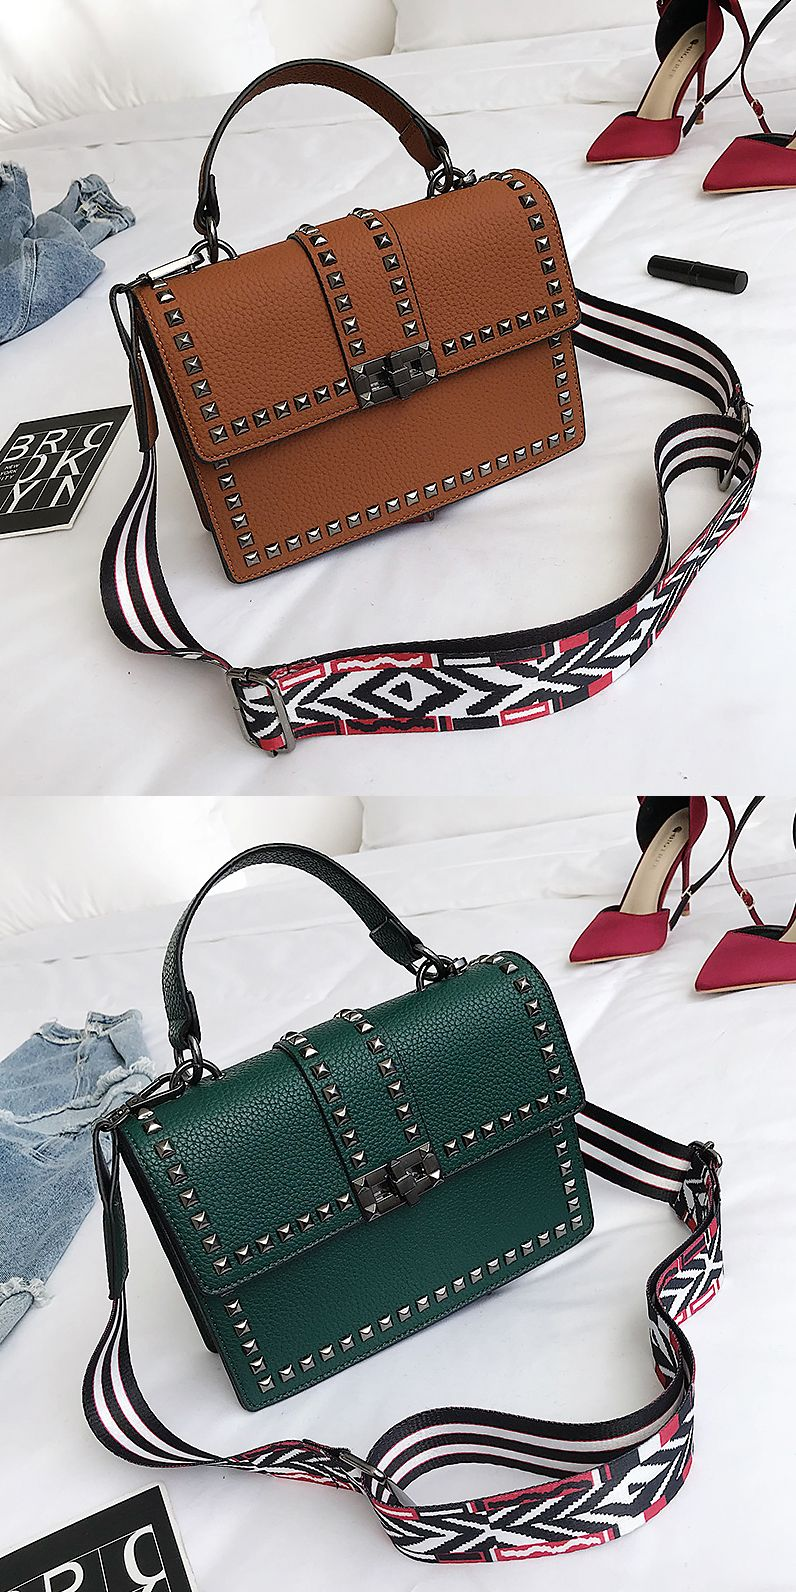 Girls fashion shoulder handbags. Look at my picks for best